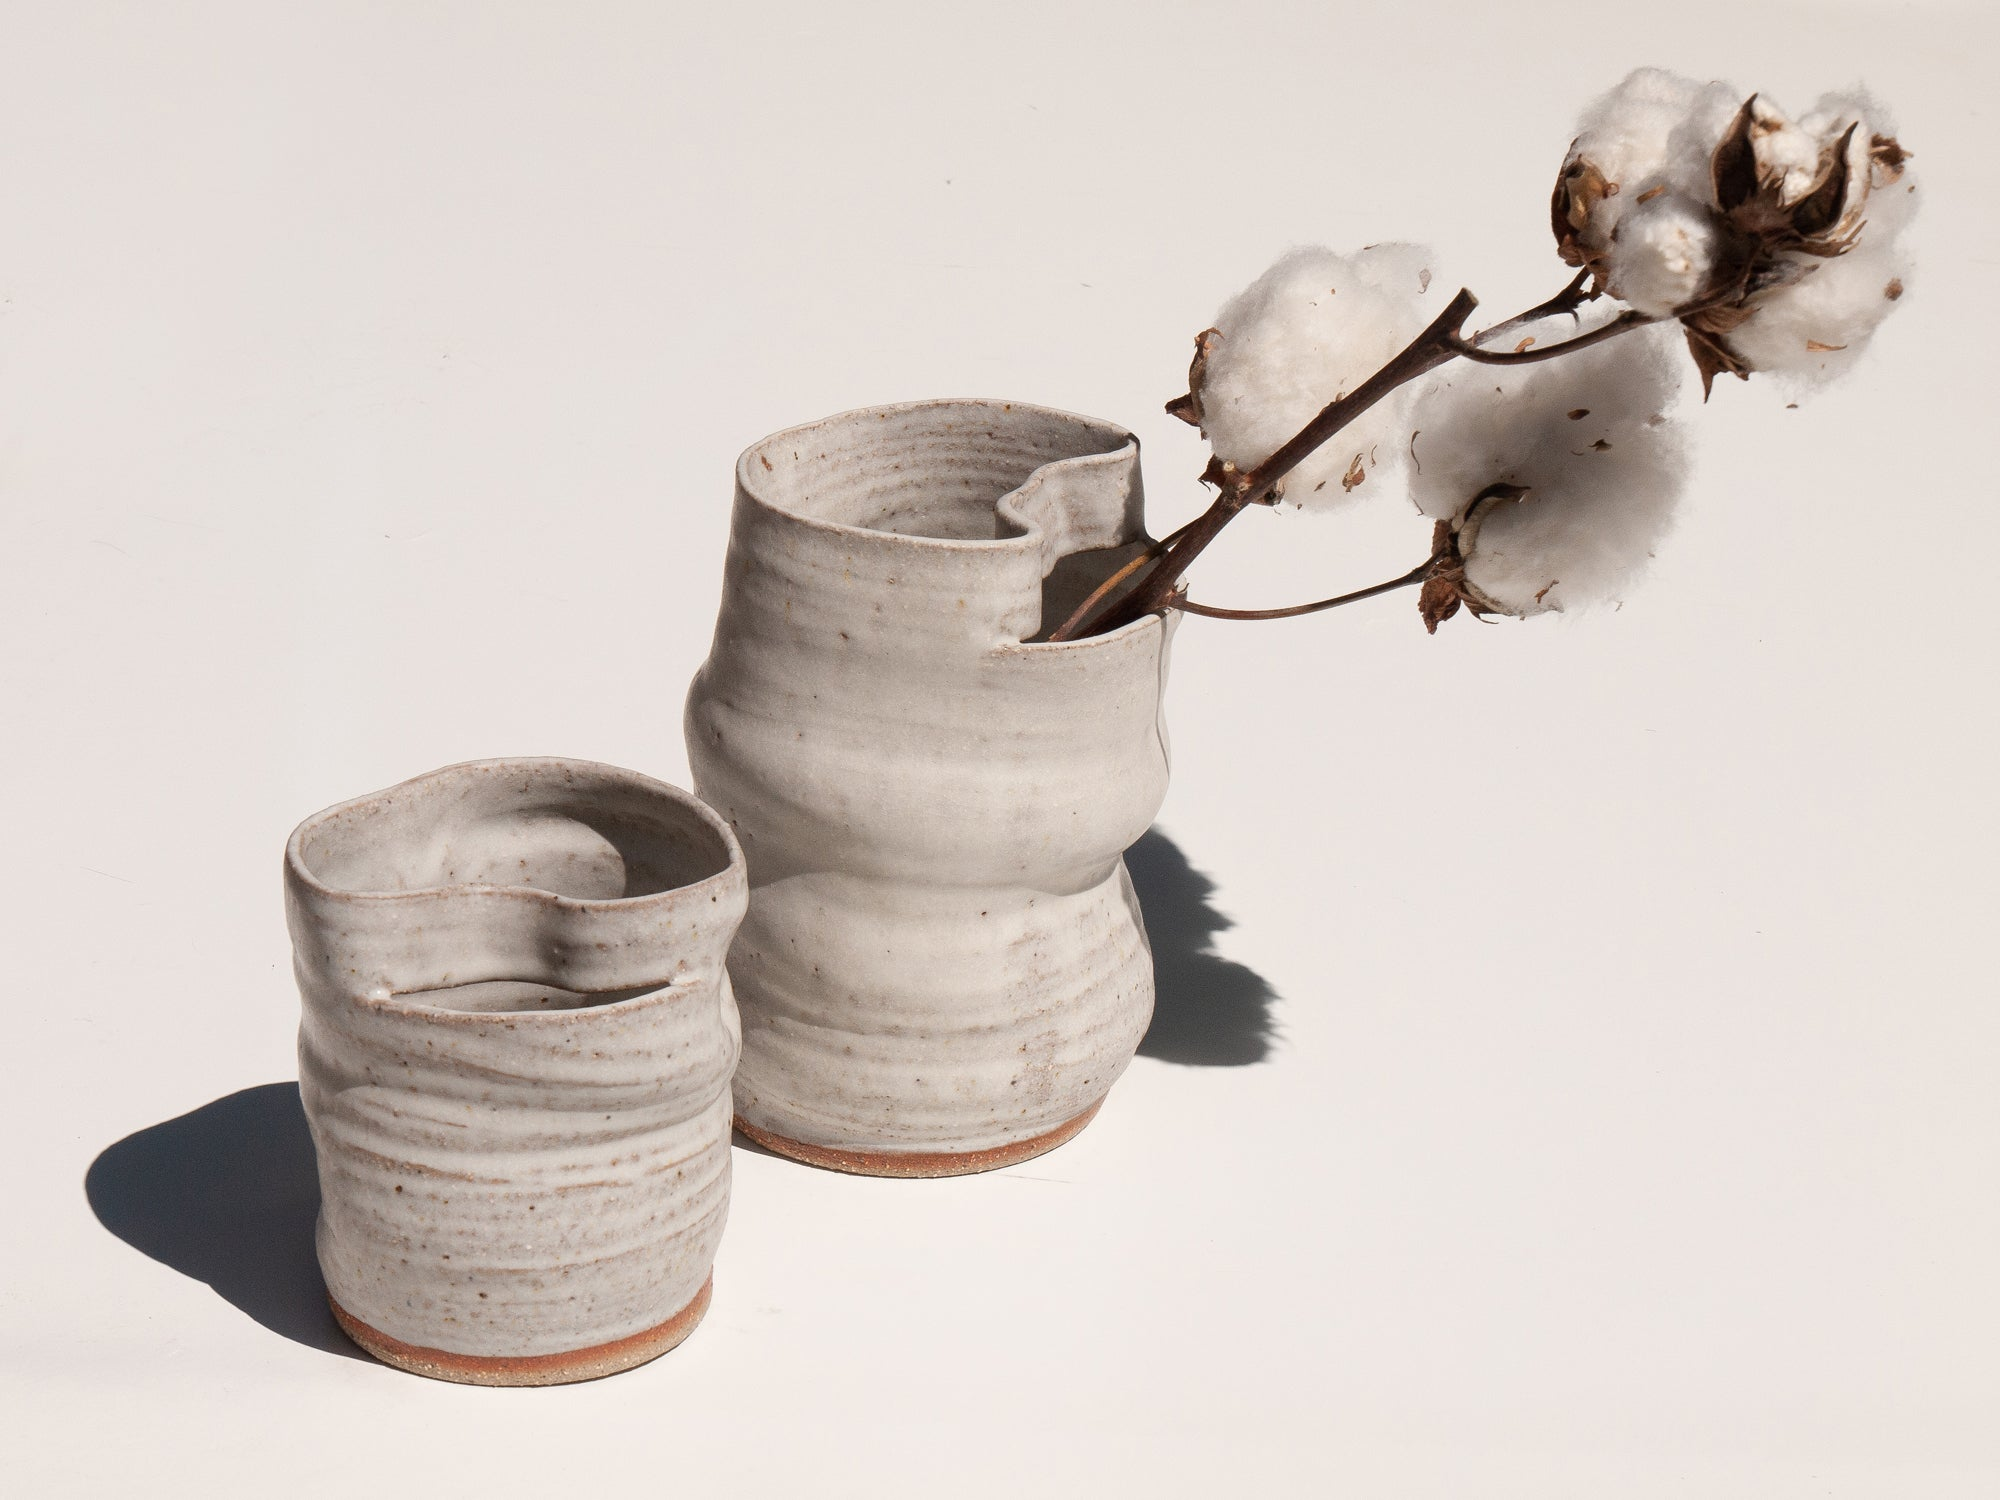 Original interior items with their own hands, making vases of clay with their own hands